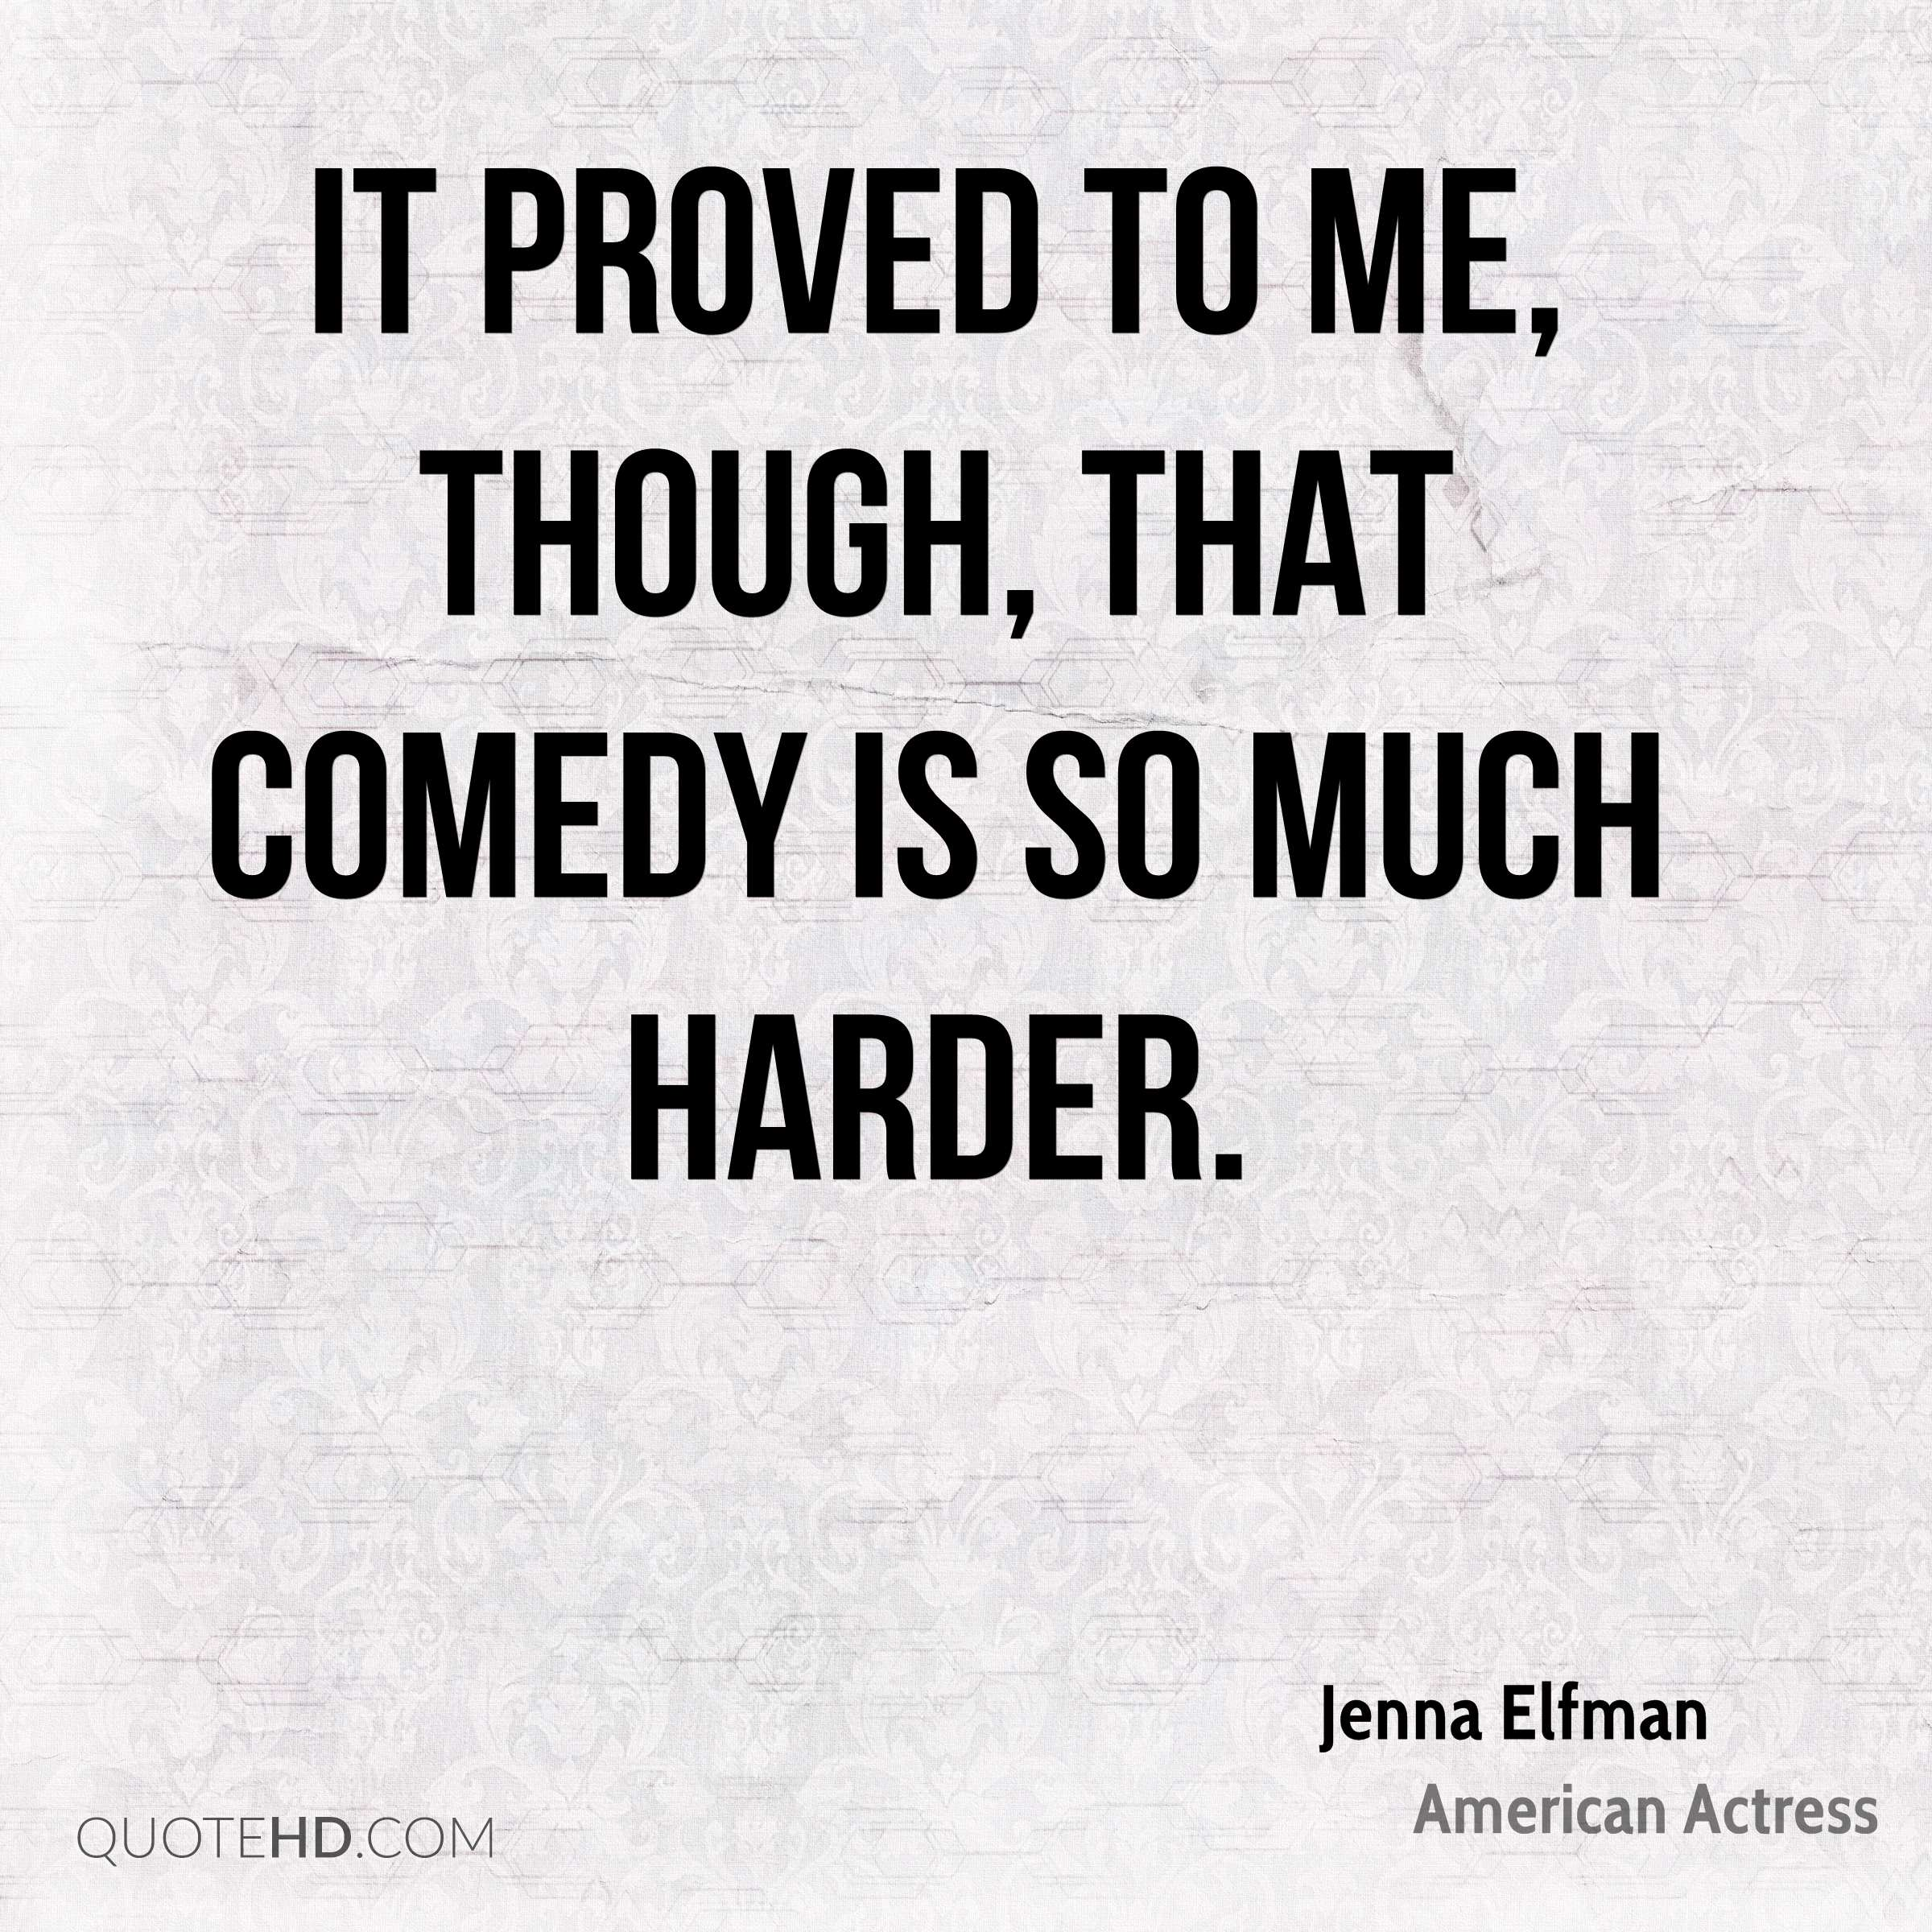 It proved to me, though, that comedy is so much harder.